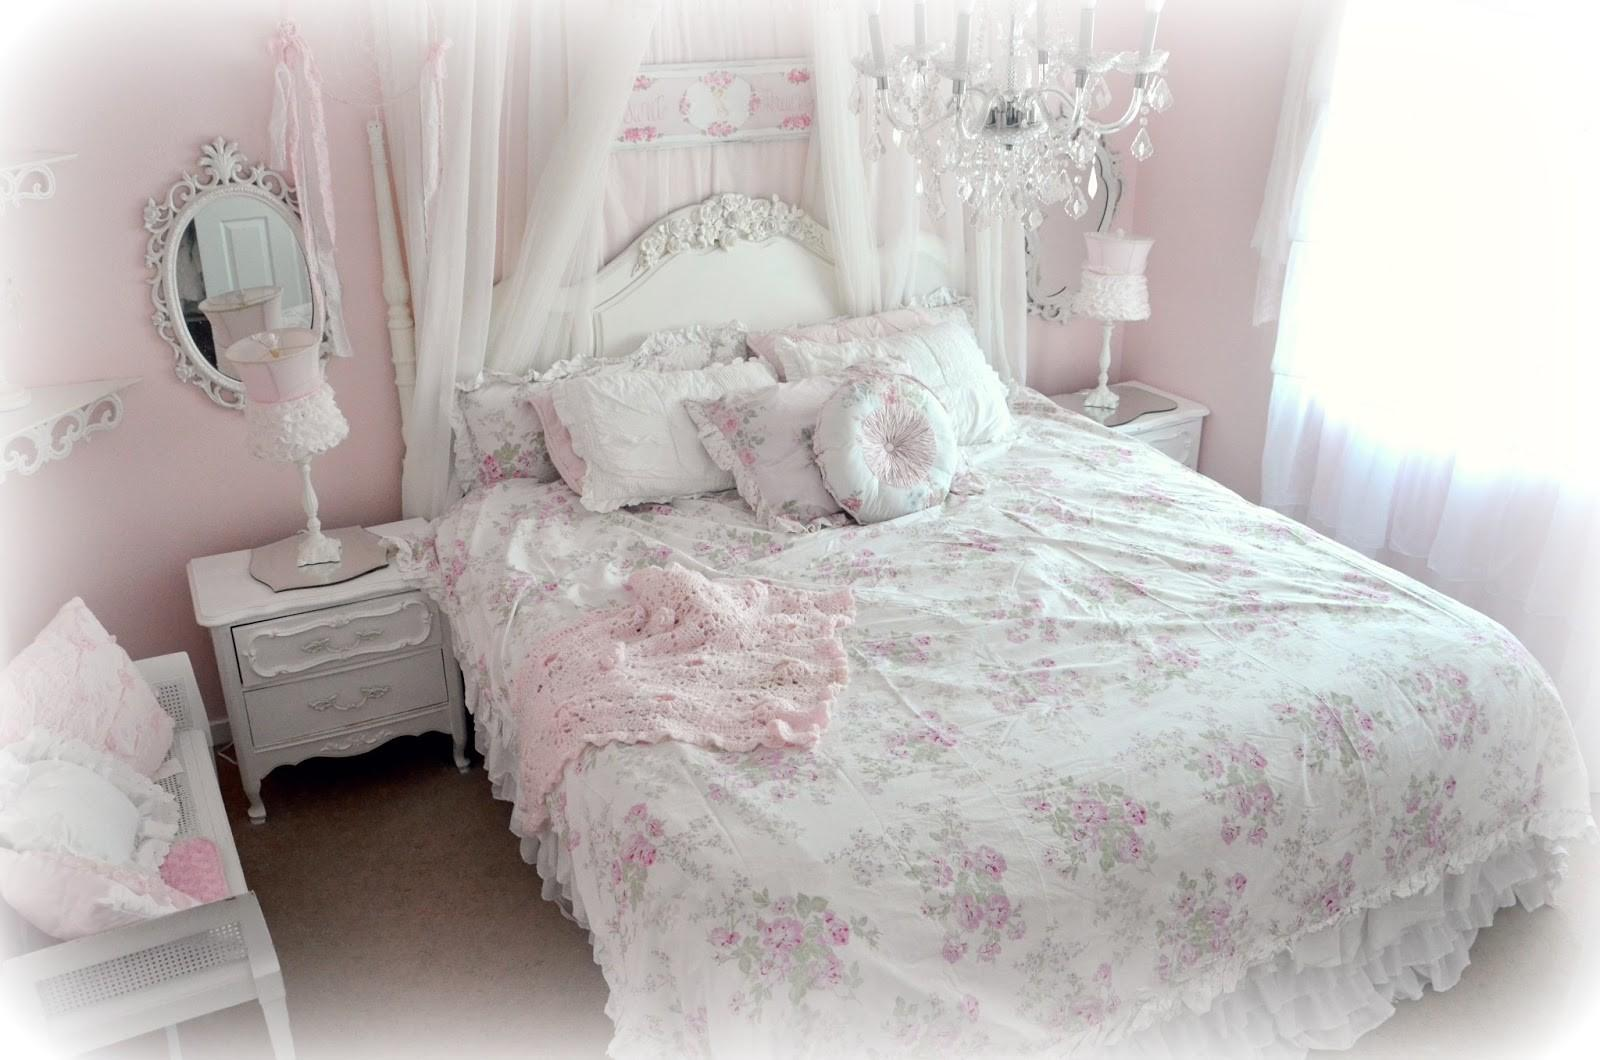 Shabby Chic Bedding Can Add Elegant Vintage Touch